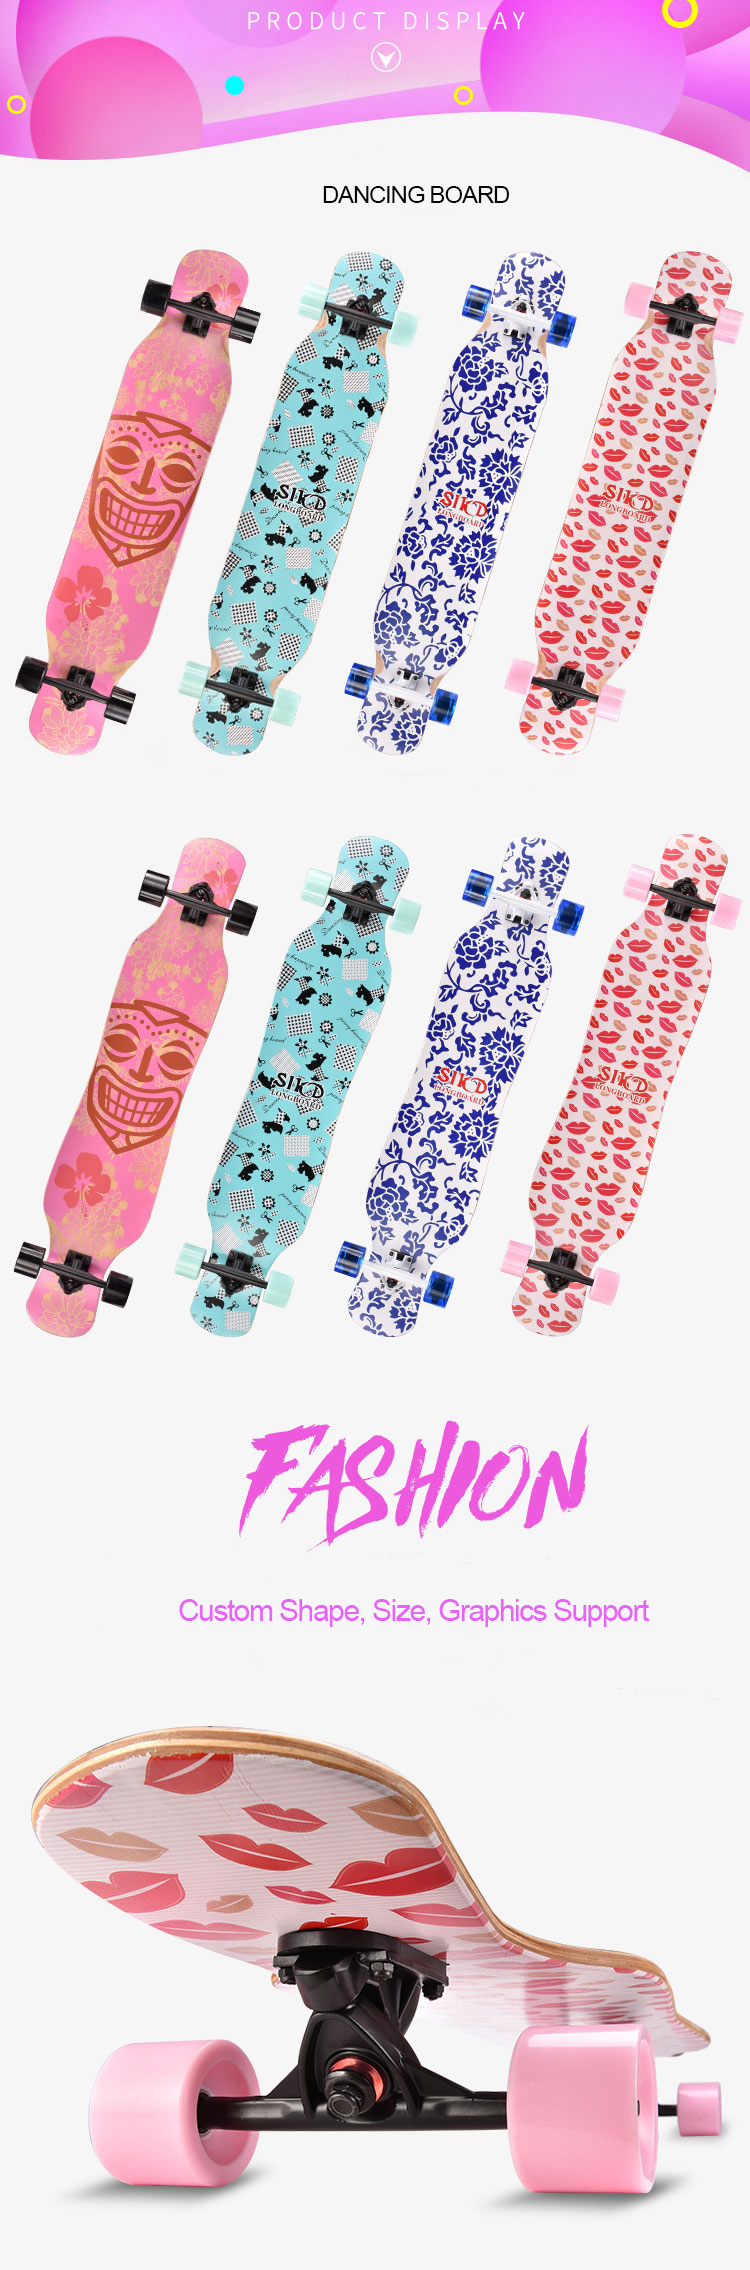 wholesale girls' dancinglongboard maple longboard deck paris trucks PU high rebound wheels